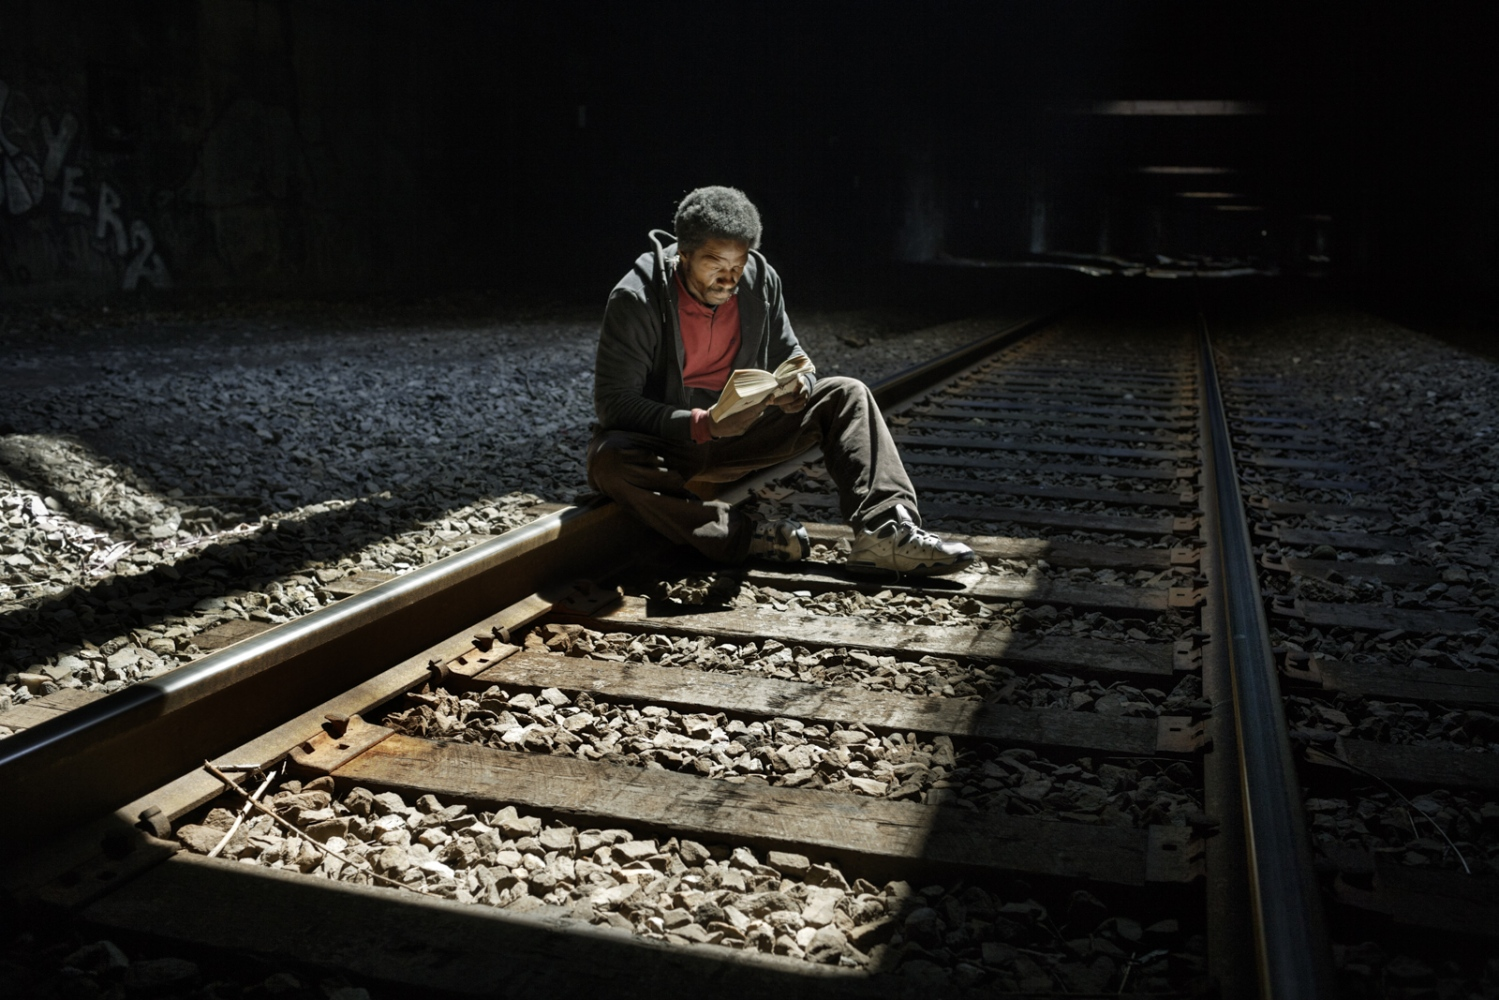 Light falls from the grates in the ceiling of the train tunnel. Chuck waits for his companion.